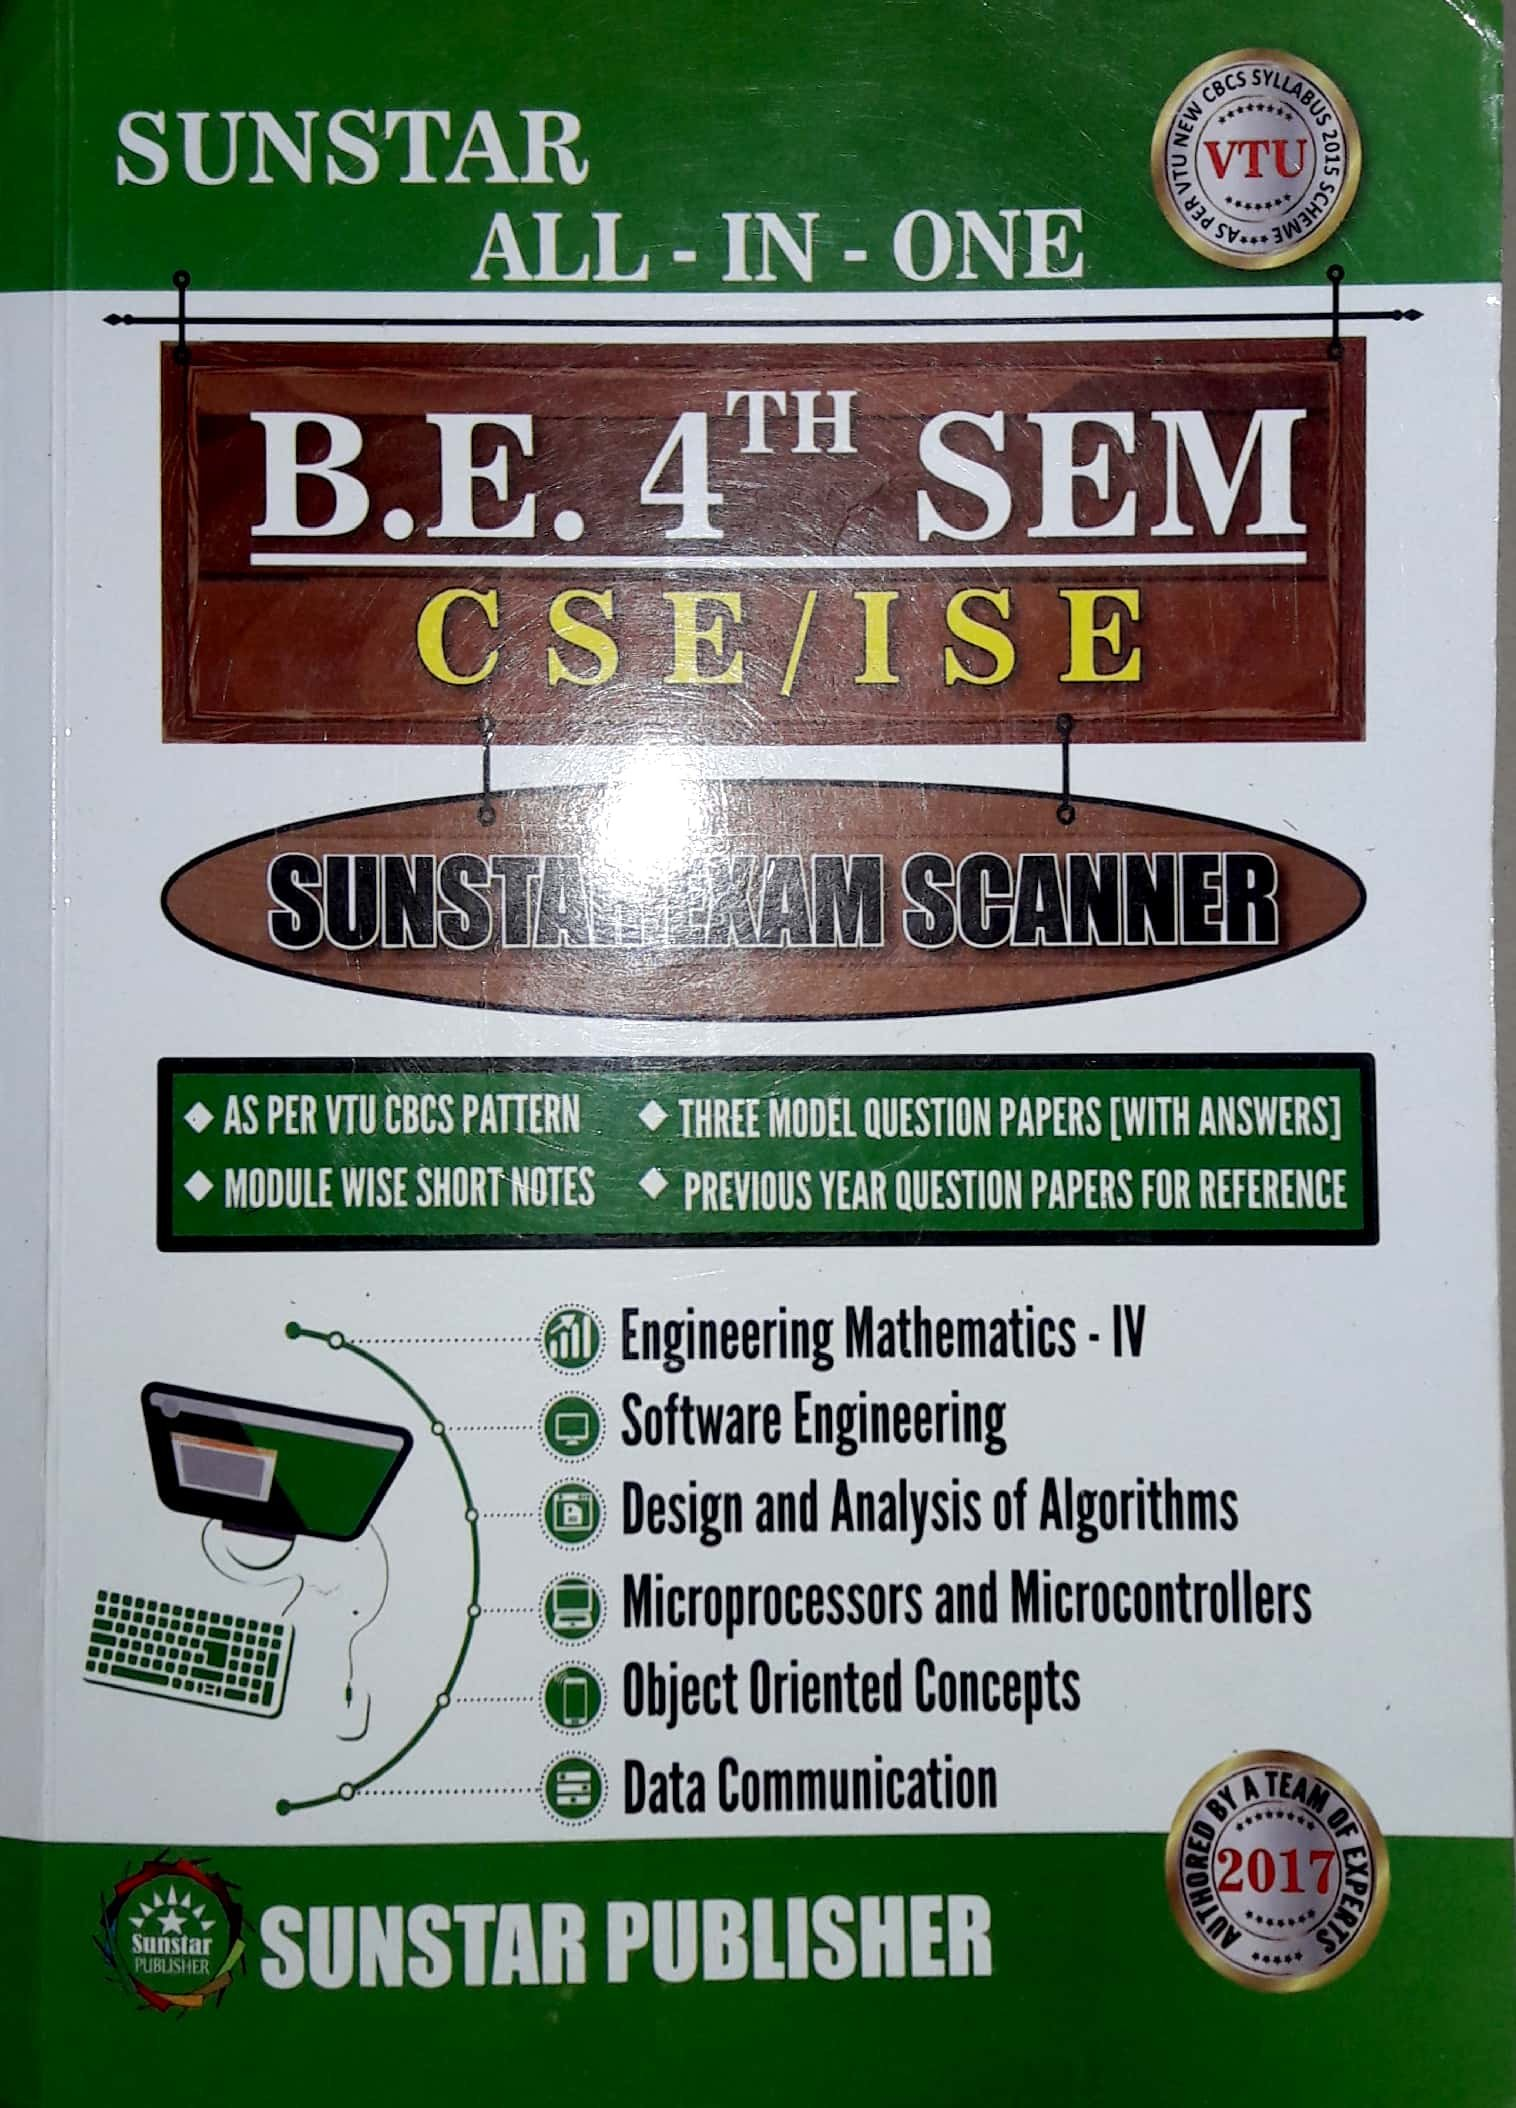 Amazon in: Buy SUNSTAR exam scanner for 4th sem CSE/ISE CBCS